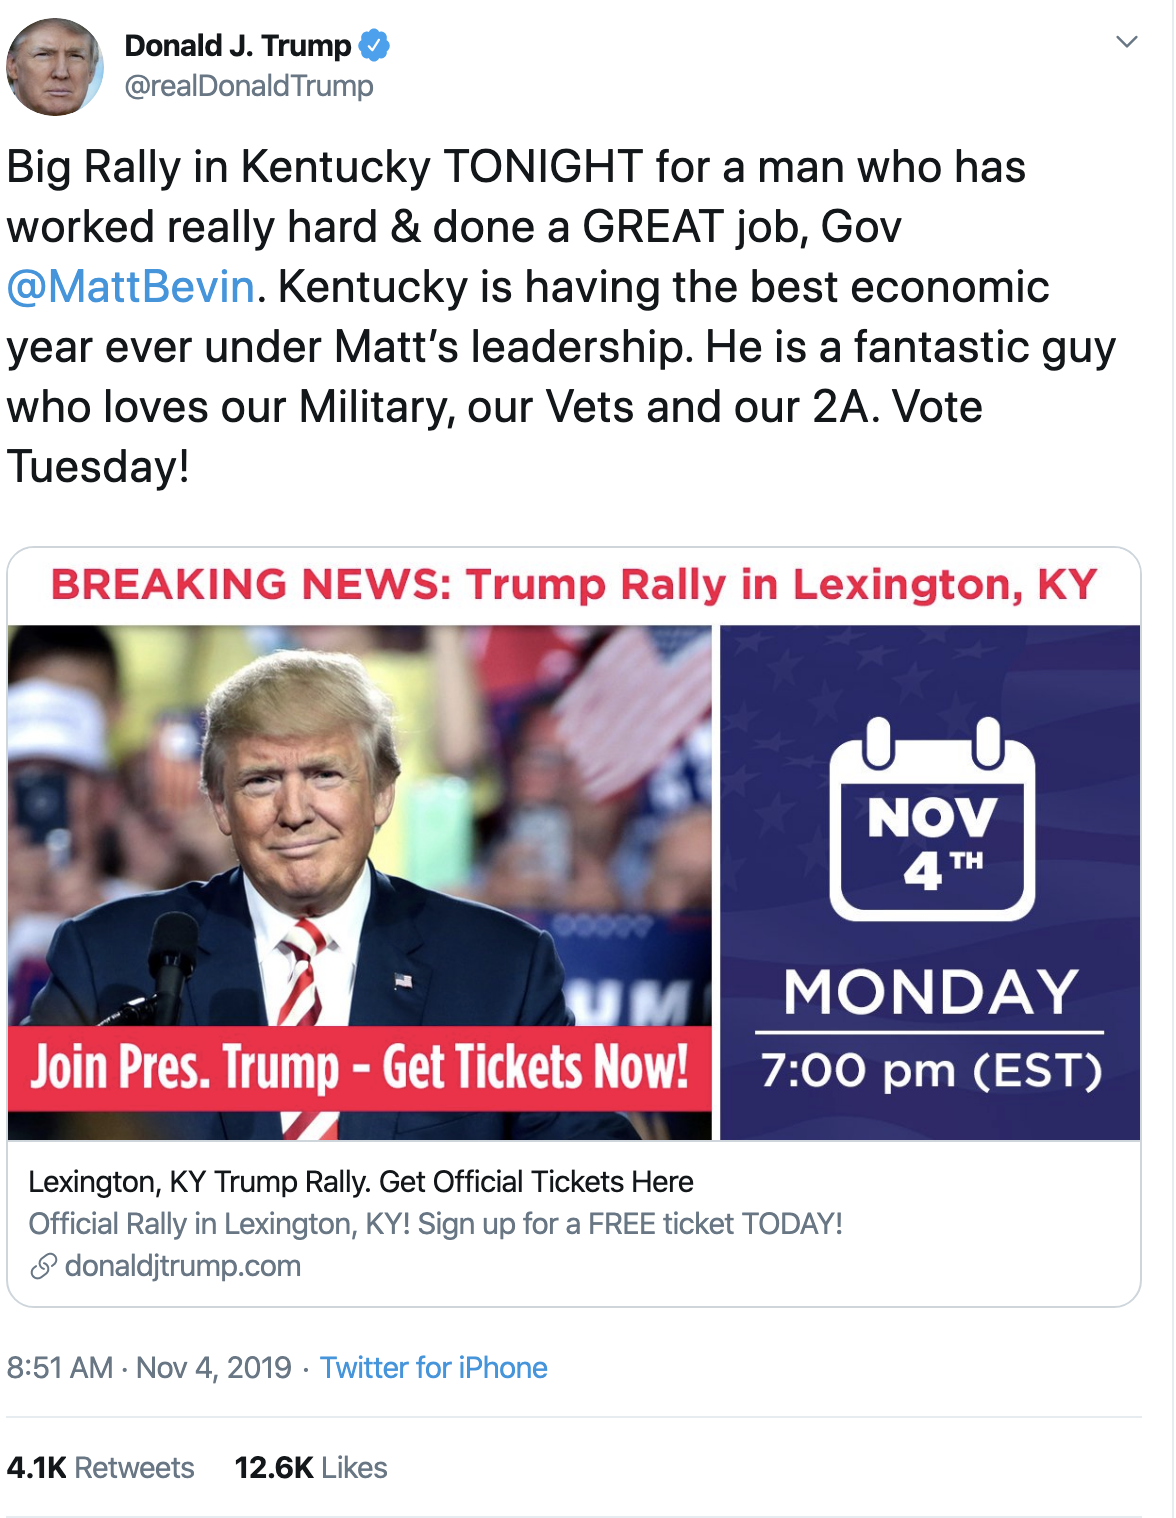 Screen-Shot-2019-11-04-at-9.44.00-AM Trump Continues Monday Morning Mental Breakdown On Twitter Corruption Crime Domestic Policy Donald Trump Economy Election 2016 Election 2020 Featured Foreign Policy Impeachment Investigation National Security Politics Russia Social Media Television Top Stories War White Privilege White Supremacy